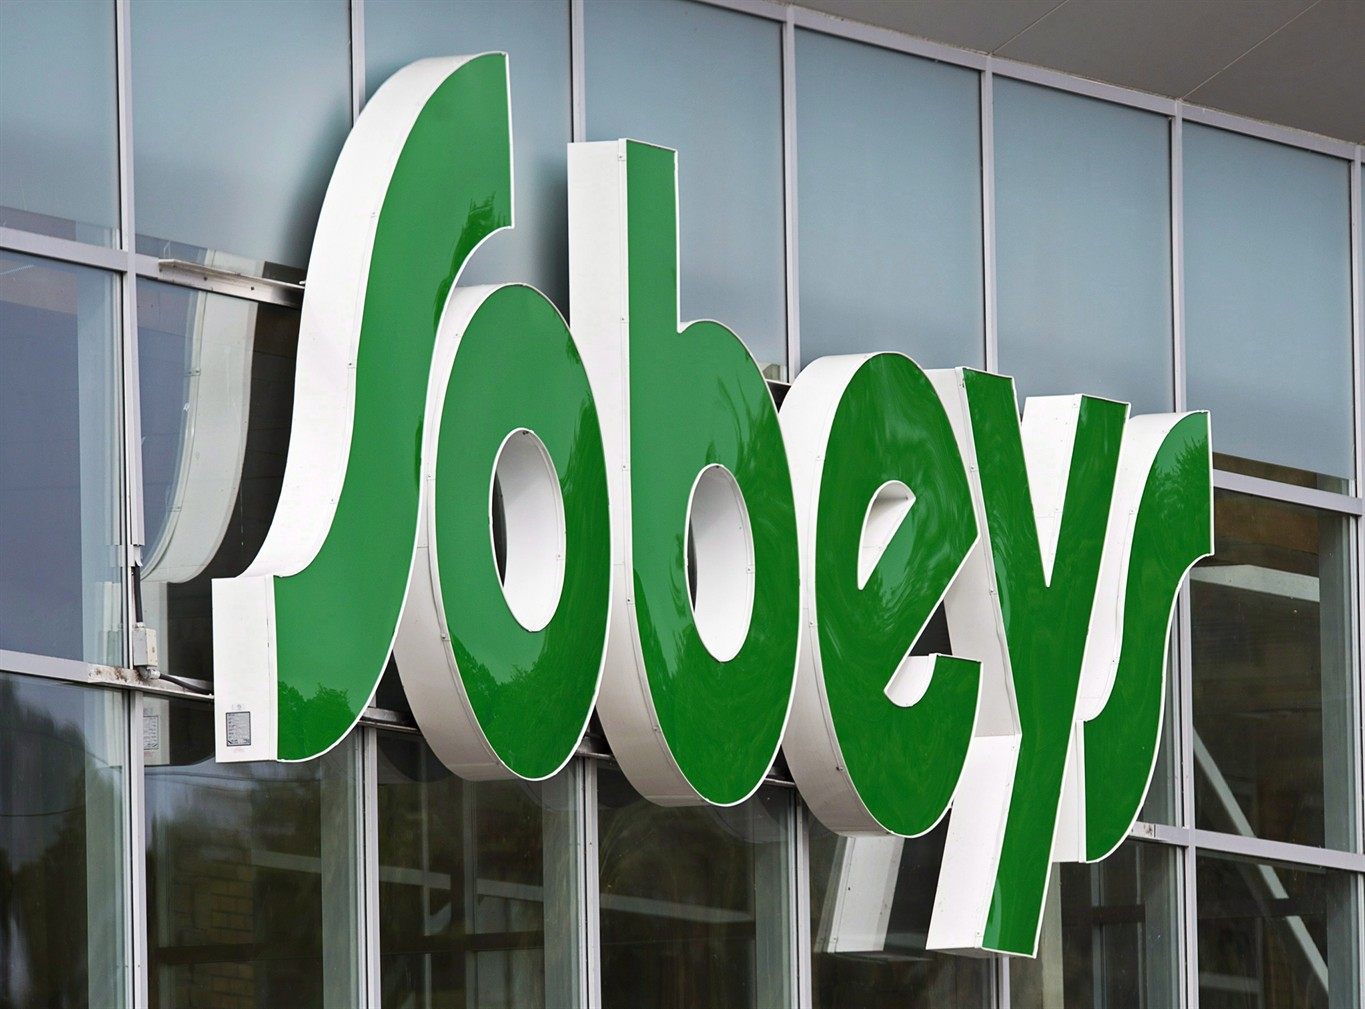 Farm Boy stores to be sold to owner of Sobeys grocery chain